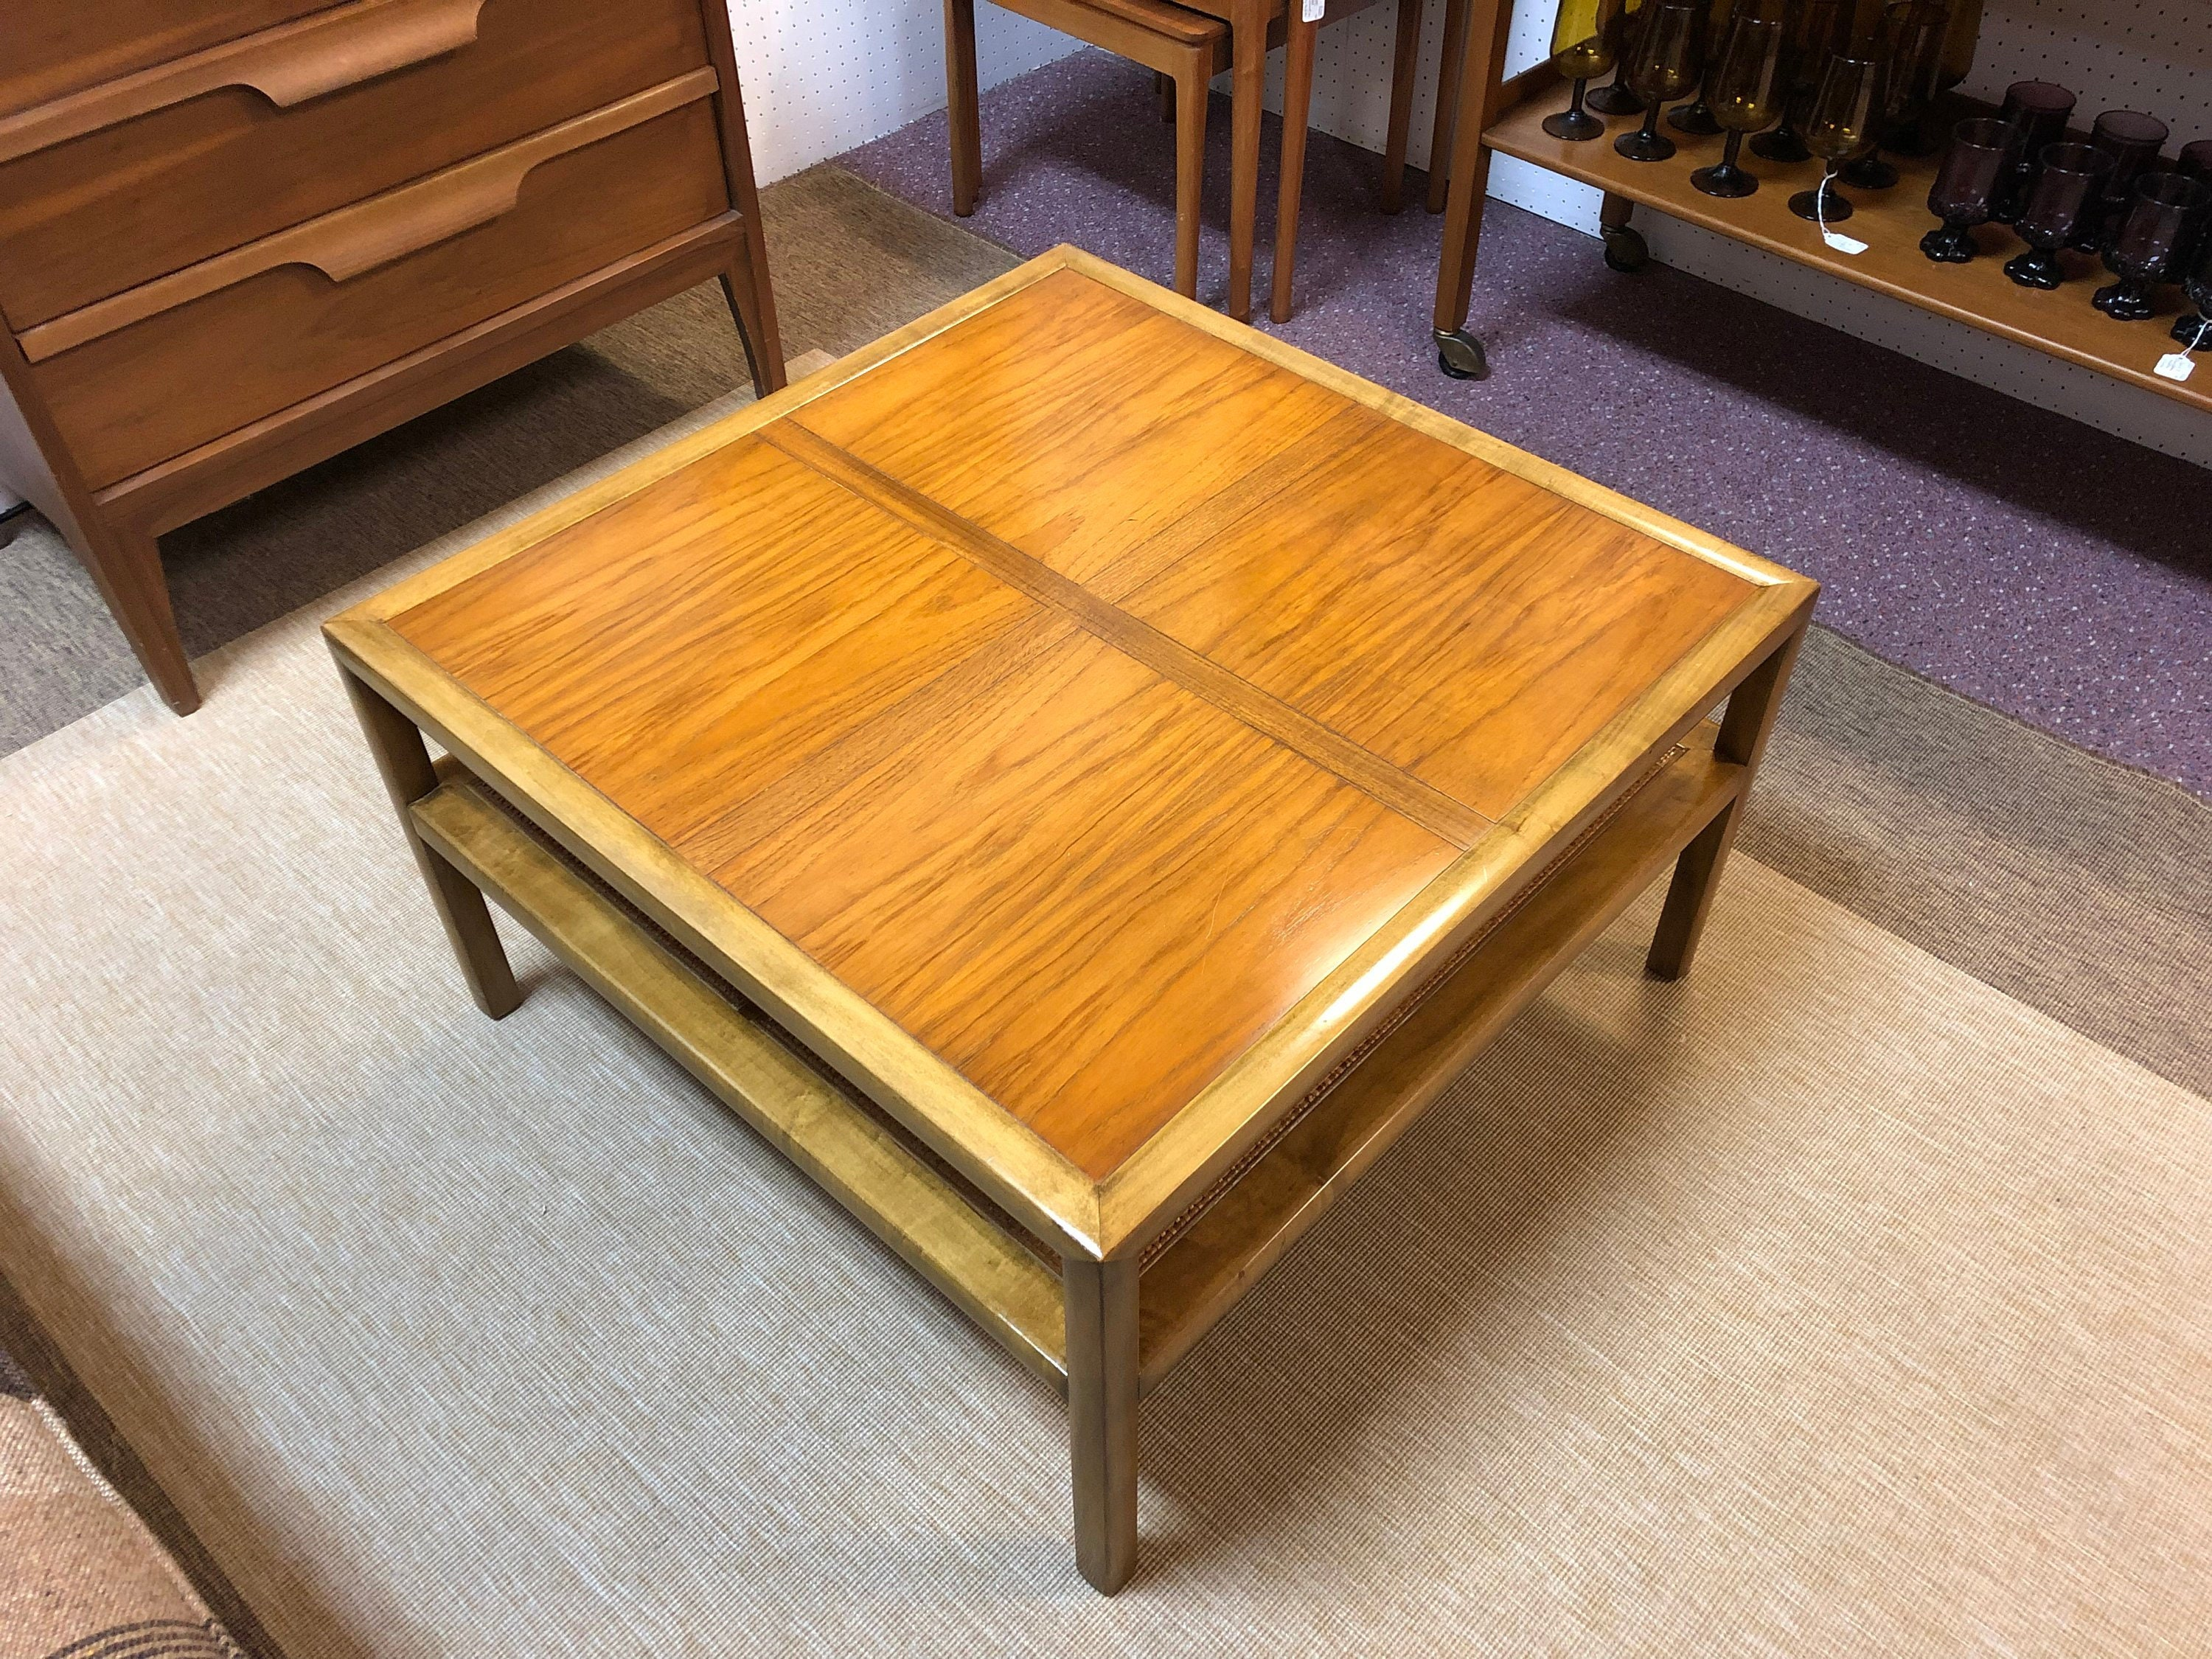 1950s Mid Century Modern Baker Furniture Square Coffee